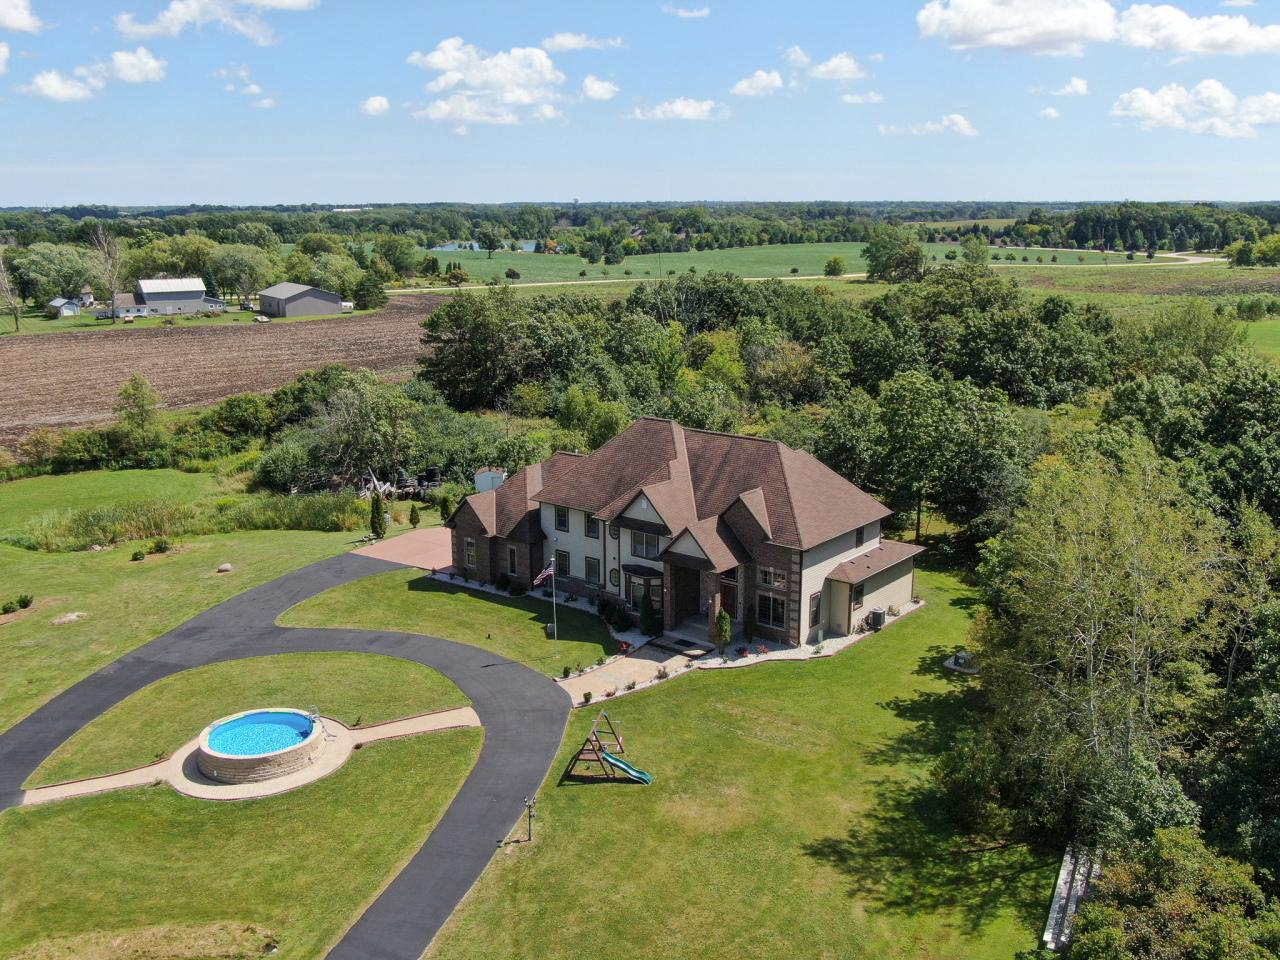 When driving thru the Two Stone Gates you will see this Unique Stately Home with Endless Possibilities. Private 6+ acres, this 4,200+ home has it all. All new flooring on first floor, open concept, new 2 story stone fireplace, gourmet kitchen with wine bar. Master bedroom on first floor with sitting area and completely redone bath. Custom brick and tile work thru out the home. Loft area and extra bonus room/exercise/playroom. Plenty of light, patio doors lead to massive stone patio with outdoor kitchen. Great entertaining space that is very private. Even the garage space has been redone. Too many updates to mention. This is one of a kind. Quality craftsmanship and pride of ownership shows in this custom home. Home Warranty Included for peace of mind.